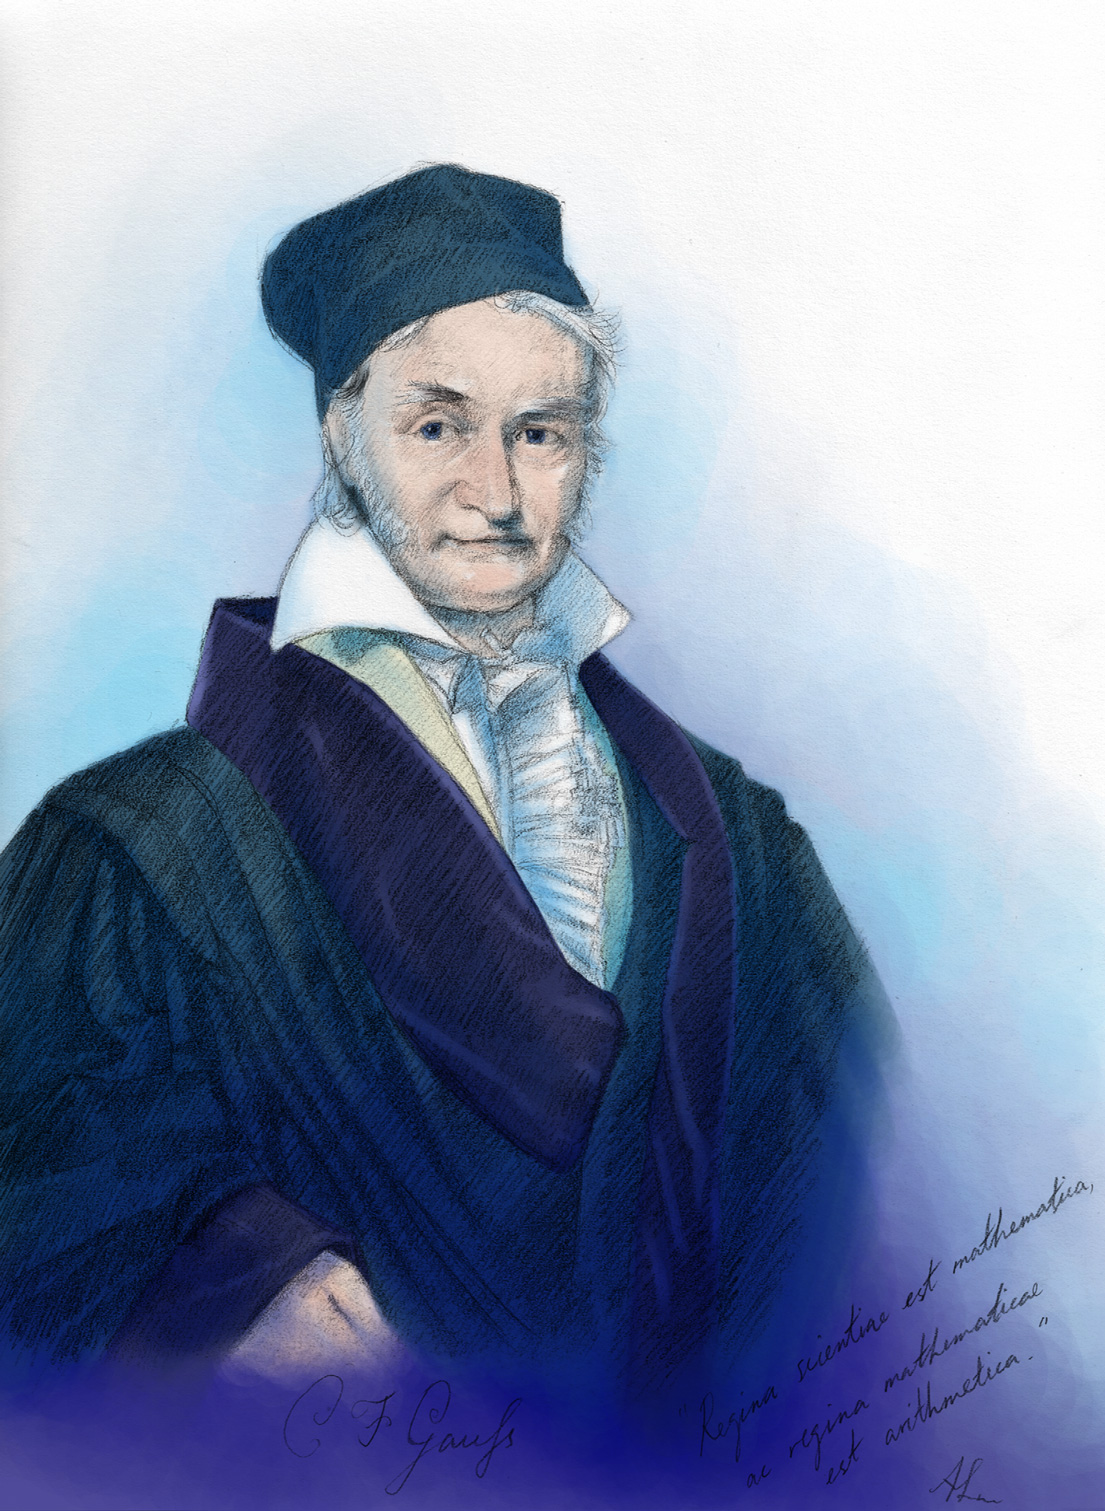 Carl Friedrich Gauss, Princeps Mathematicorum by AngelusMortis